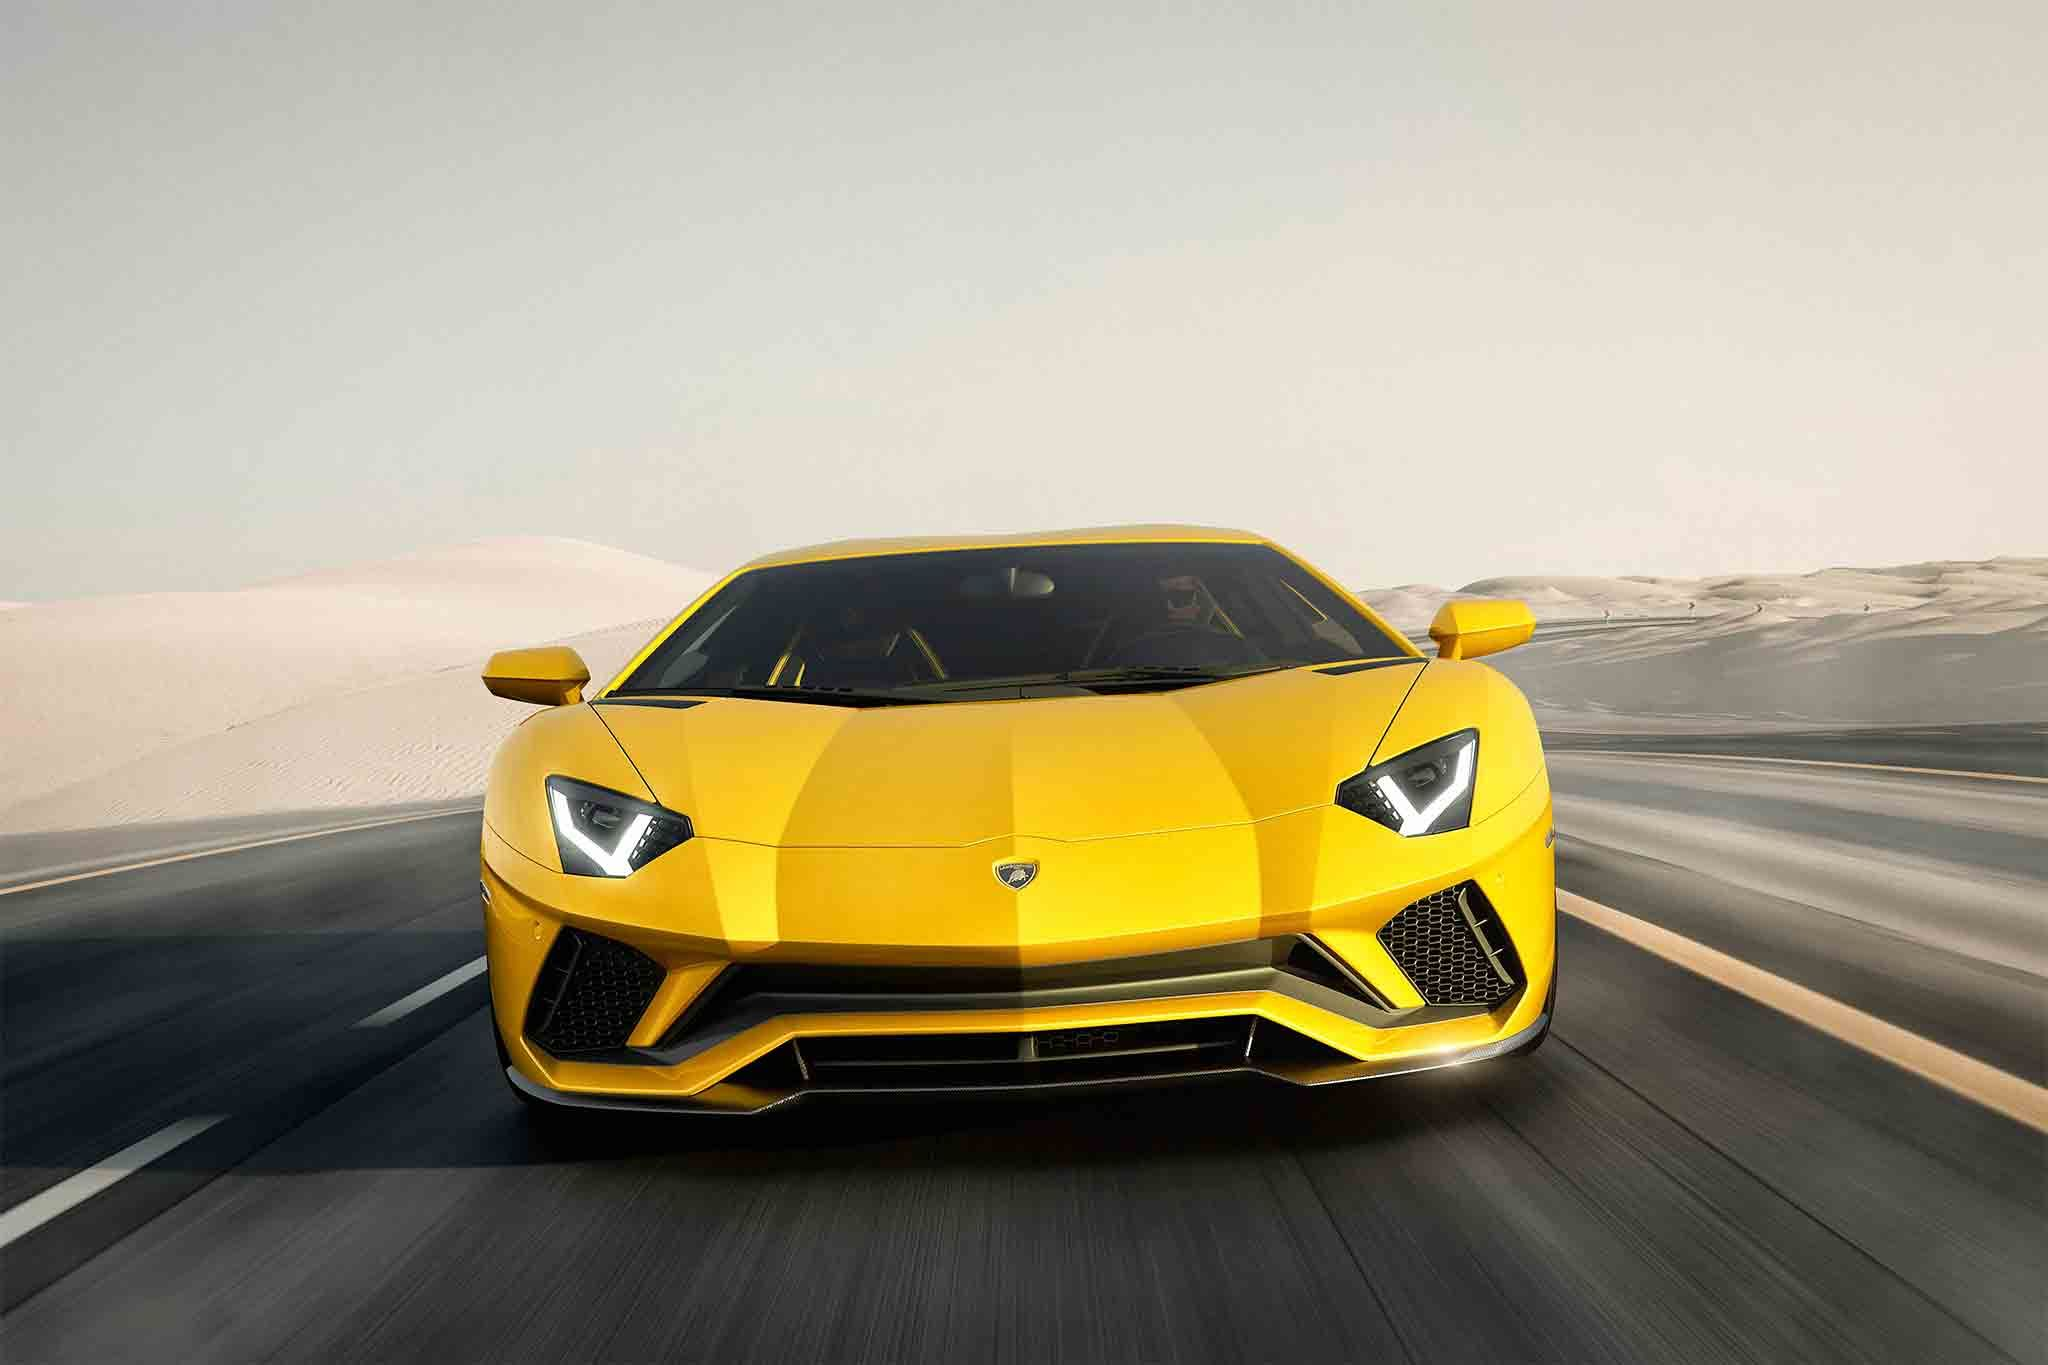 The Lamborghini Aventador S ramps up the power and chis tech on lotus elise roof, ktm x-bow roof, fiat 500x roof, bugatti veyron roof, porsche boxster roof, nissan leaf roof, jaguar xj roof, maybach roof, bmw m3 roof, caterham 7 roof, jeep wrangler roof, volkswagen golf roof, dodge ram roof, honda accord roof, ferrari 458 spider roof, ford mustang roof, porsche 918 roof, ariel atom roof, jeep grand cherokee roof, porsche panamera roof,